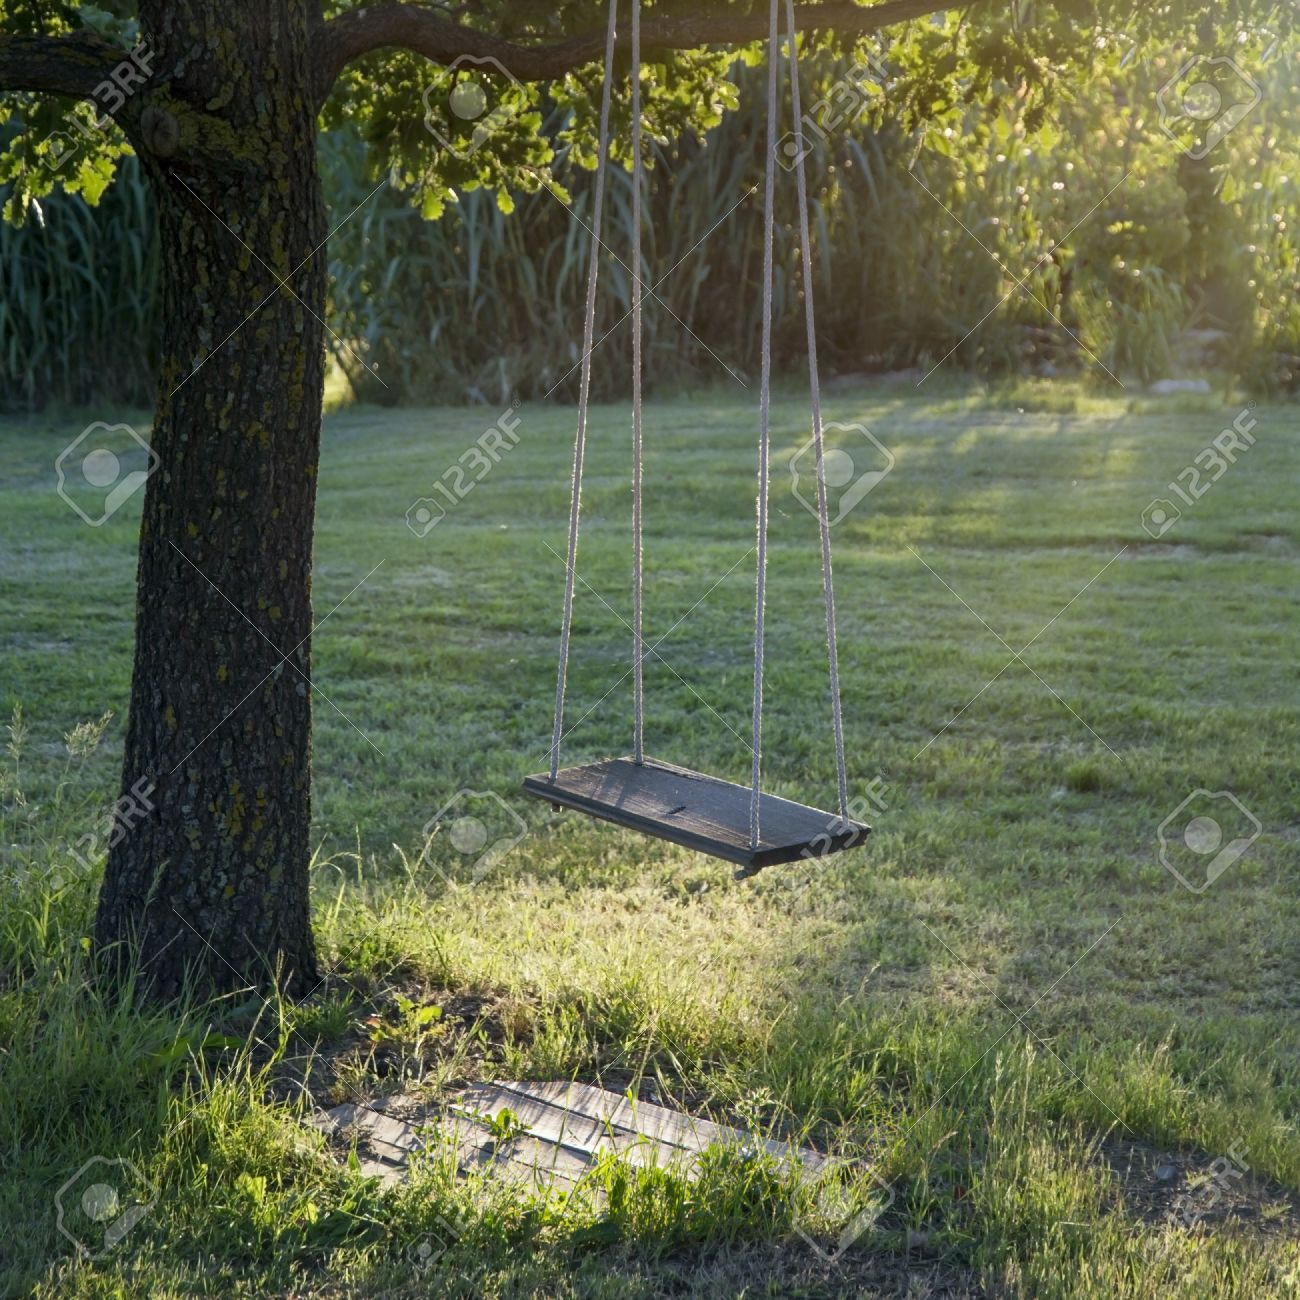 a12dc69fc1 Old wooden vintage garden swing hanging from a large tree on green grass  background